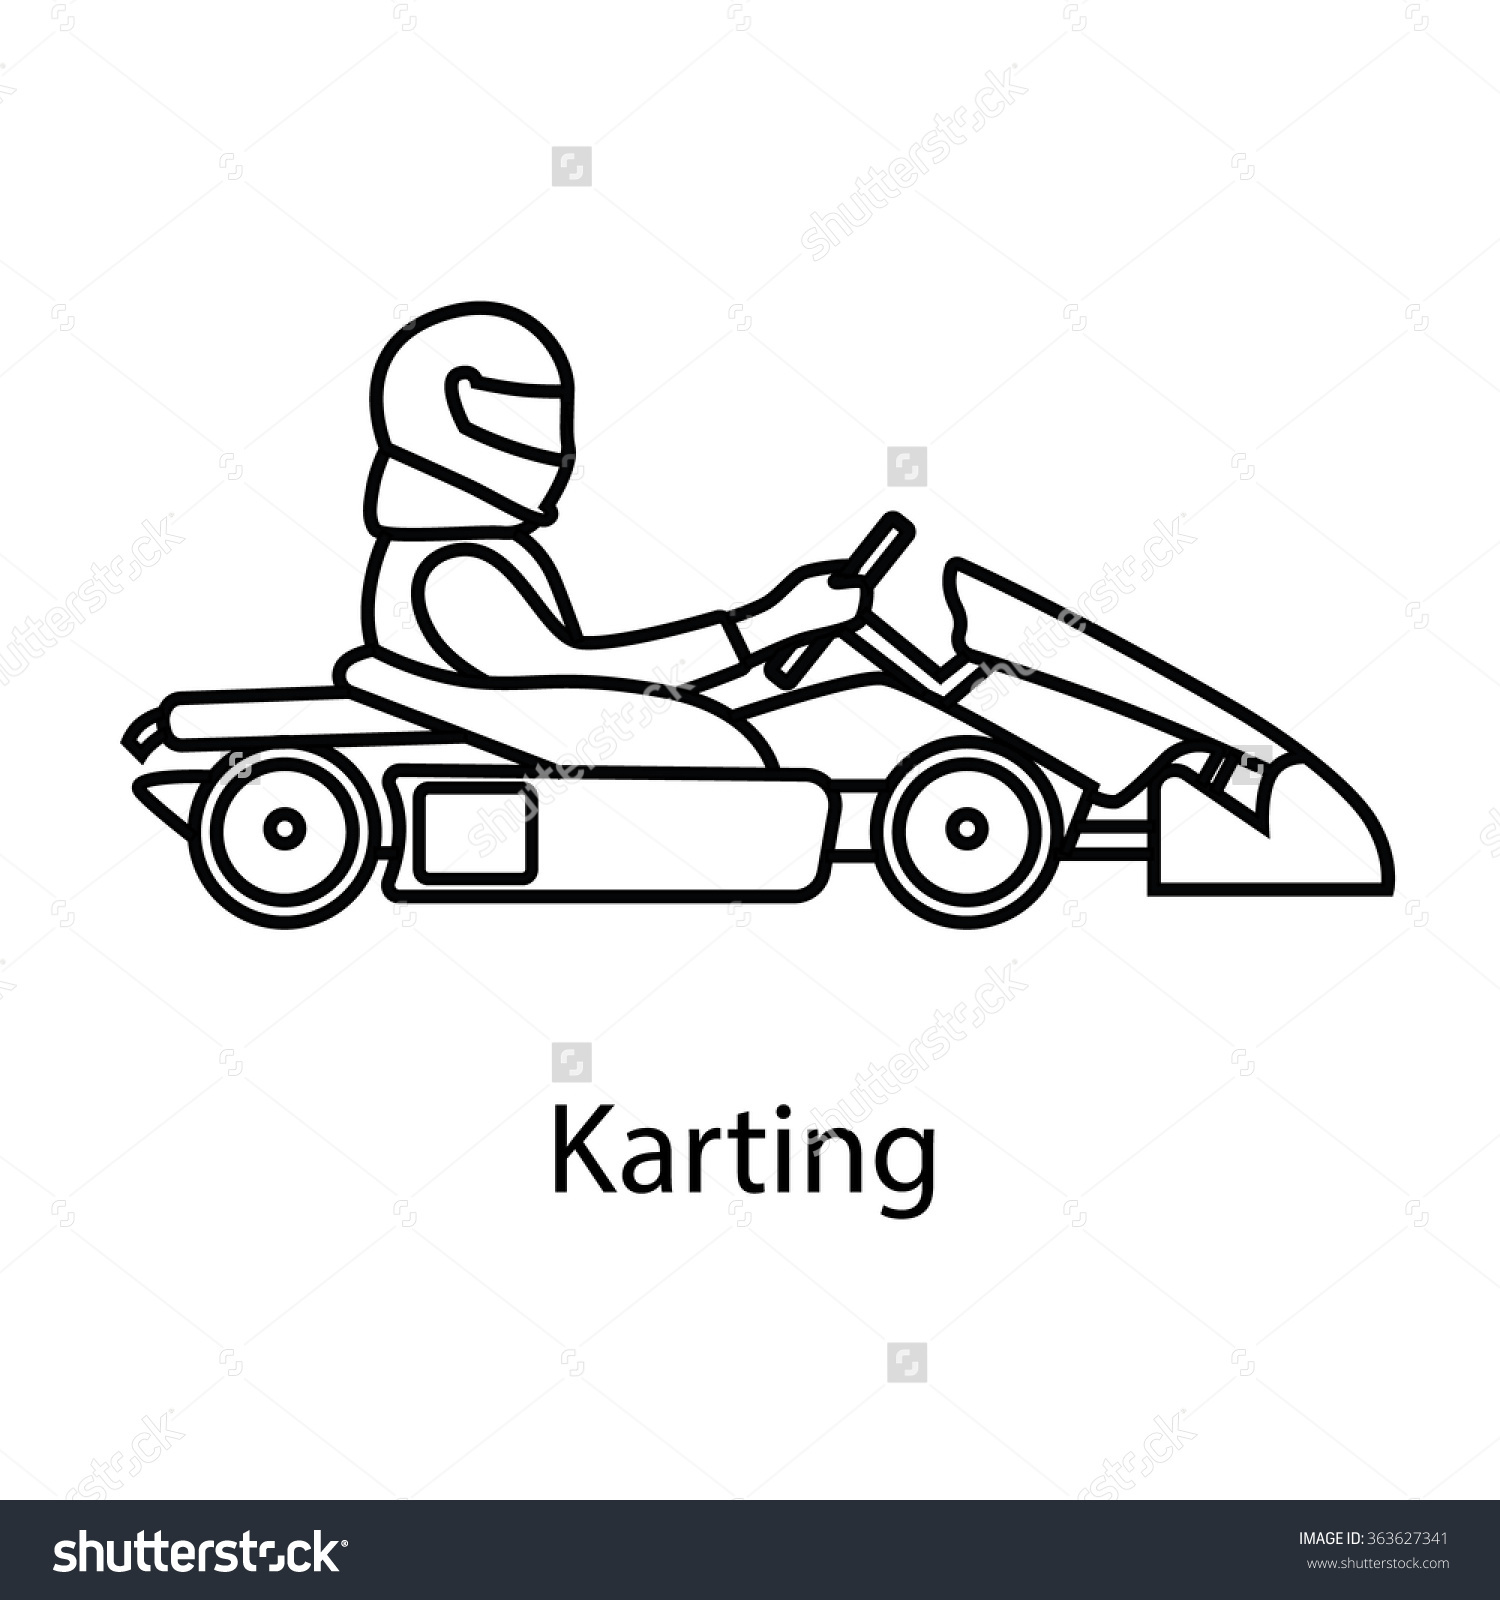 Logo Karting Man Racing On Sport Stock Vector 363627341.